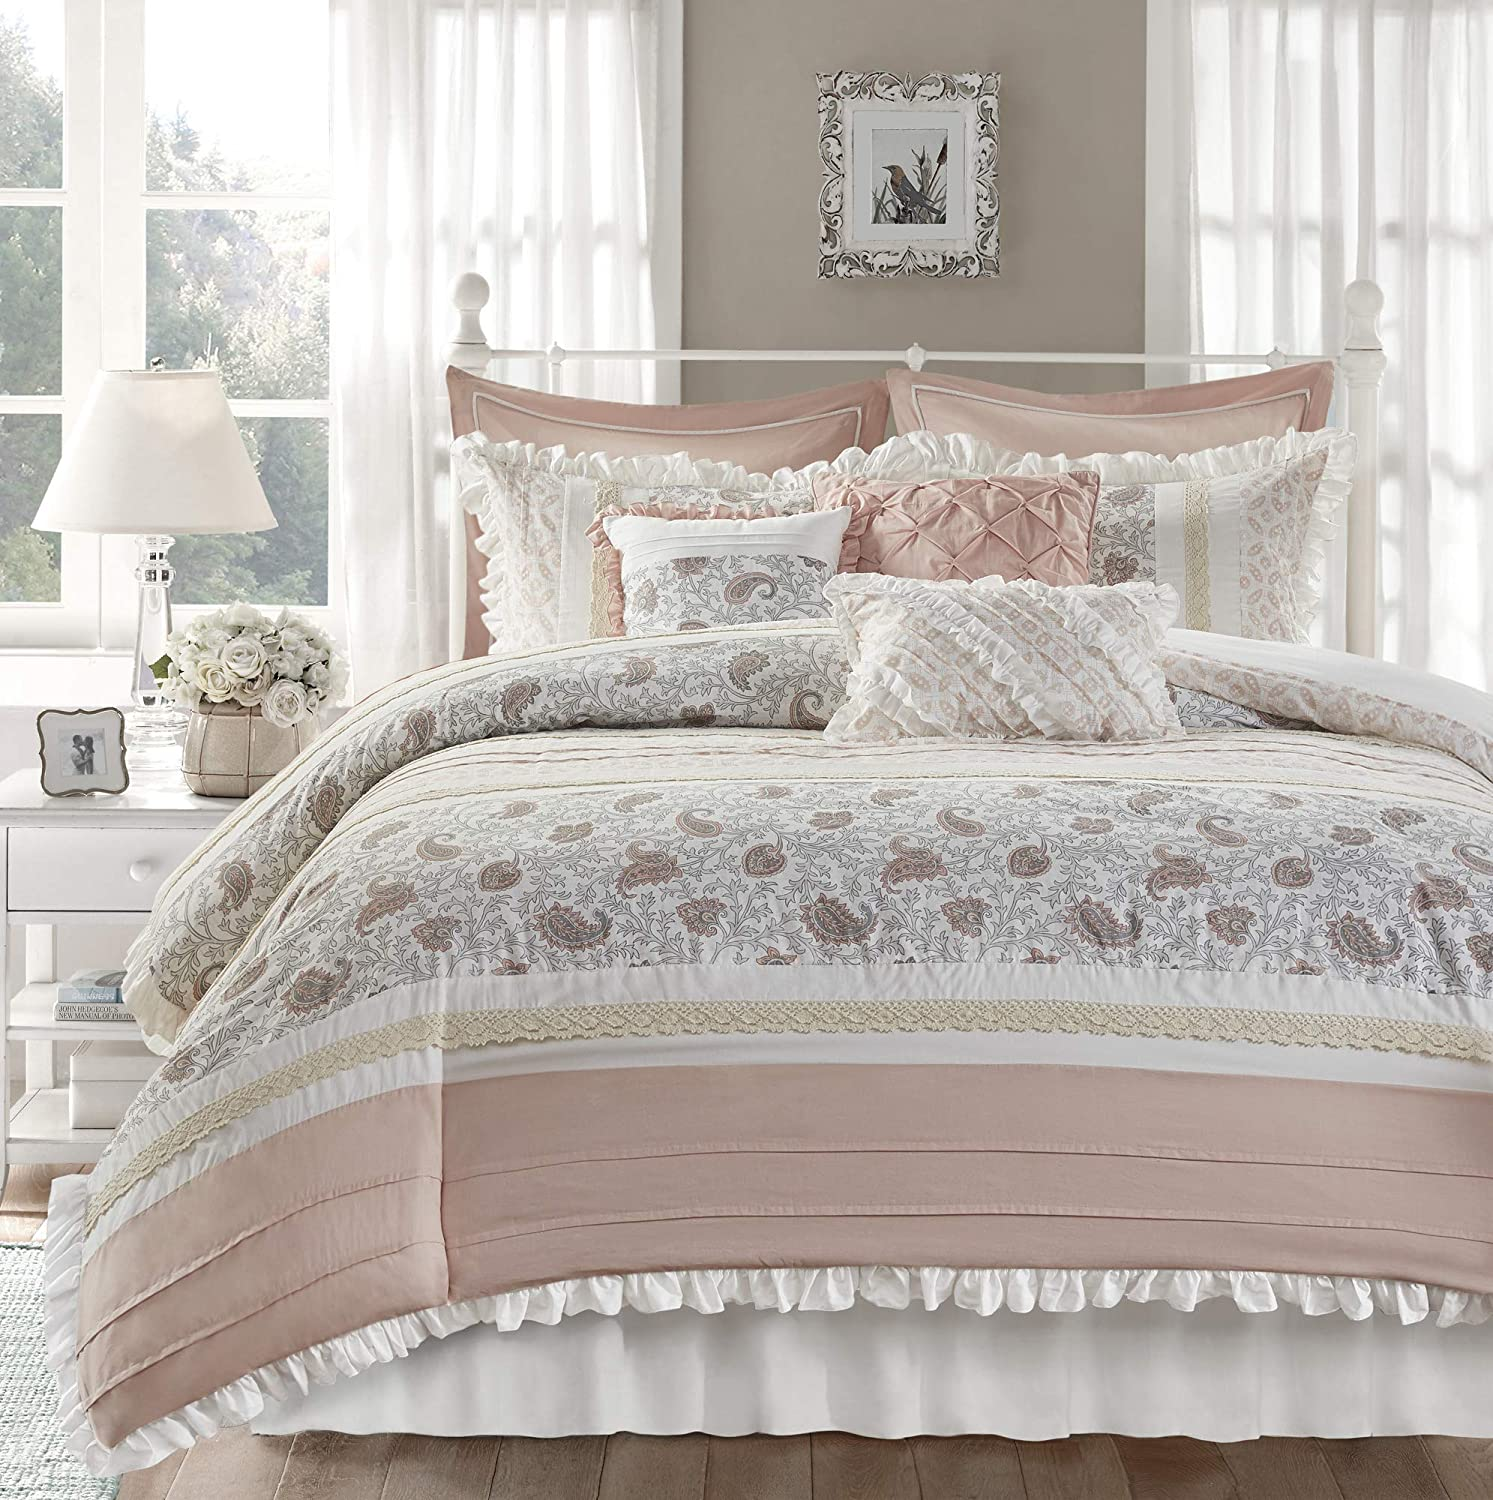 "Madison Park 100% Cotton Comforter Set-Modern Cottage Design All Season Down Alternative Bedding, Matching Shams, Bedskirt, Decorative Pillows, Cal King(104""x92""), Dawn Shabby Chic, Blush 9 Piece"